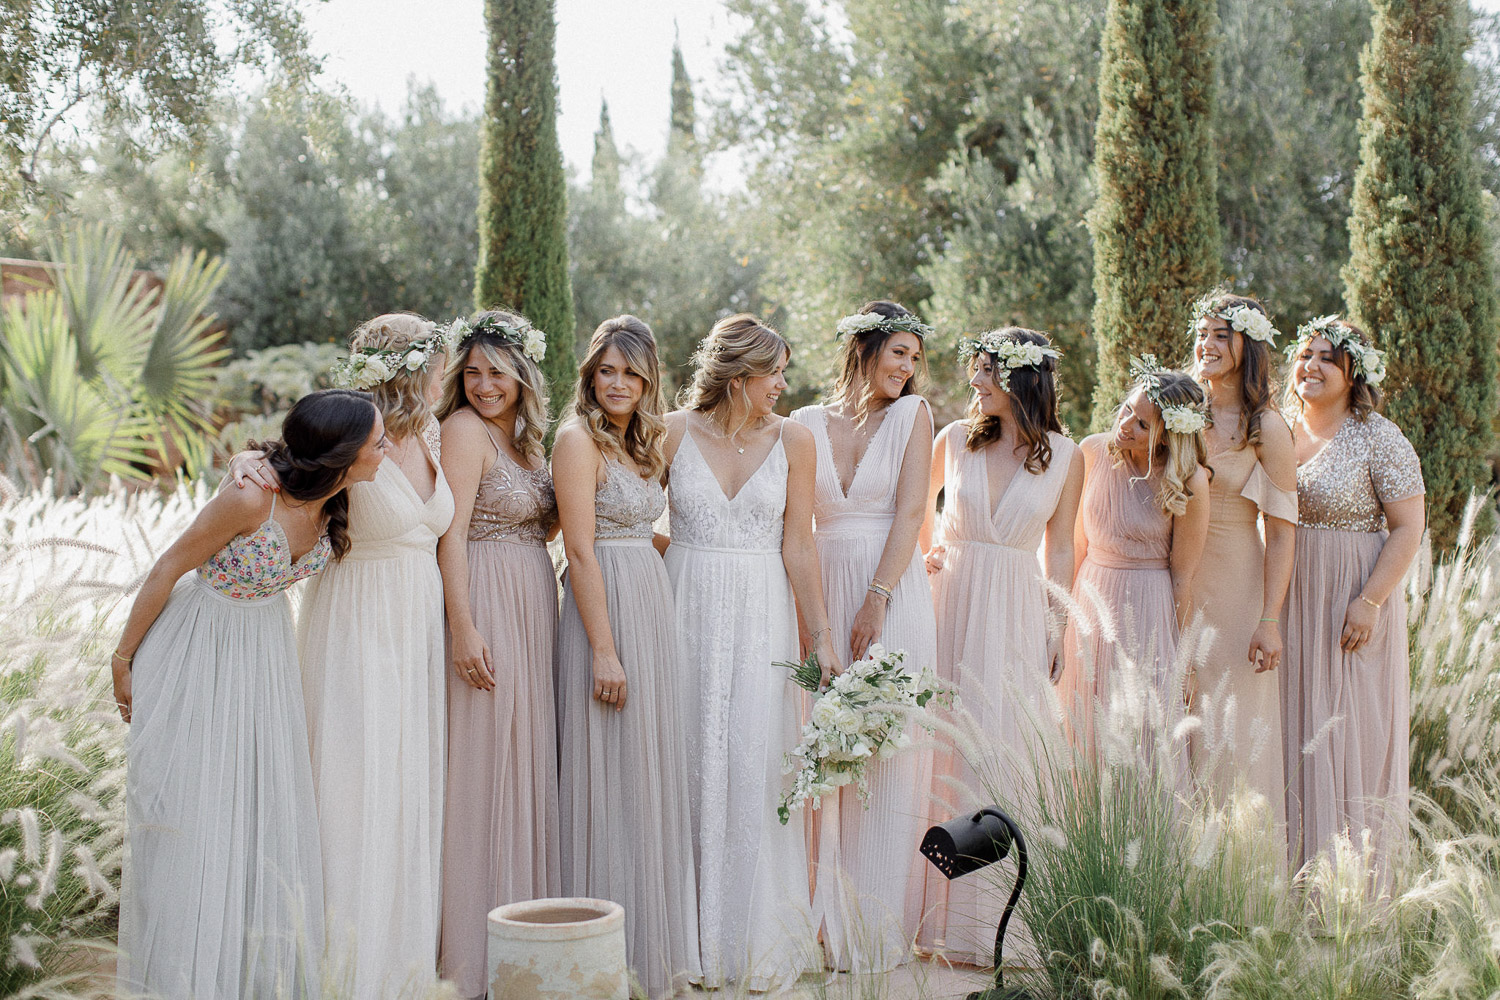 Bride and her bridesmaids in nude shades dresses